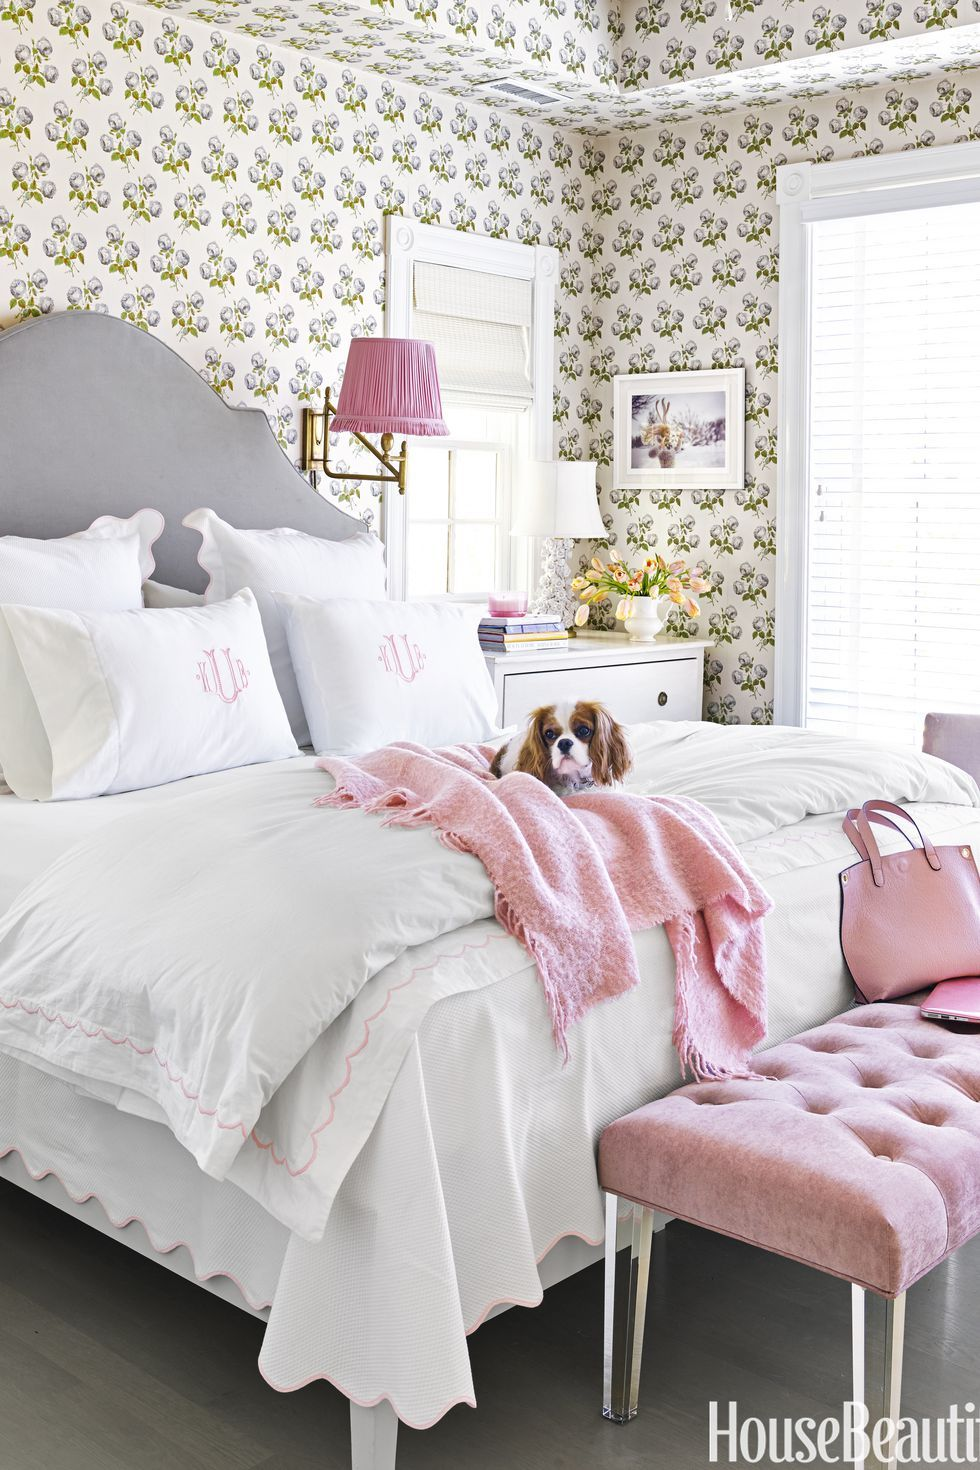 100 Stylish Bedroom Decorating Ideas - Design Tips for Modern Bedrooms